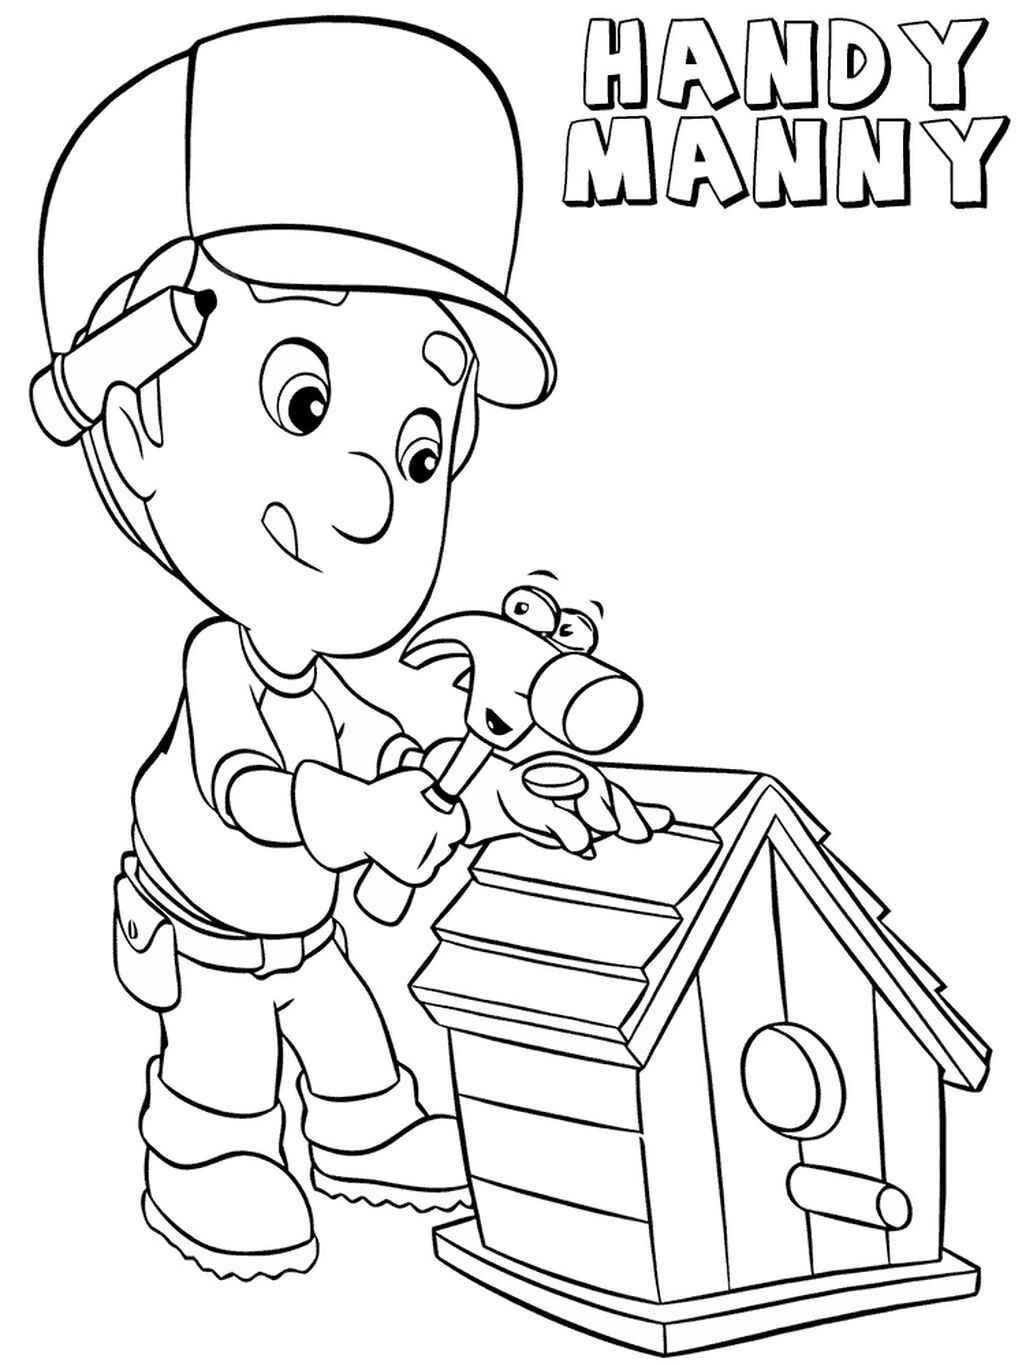 Handy Manny Fixes Birdhouse Coloring Page